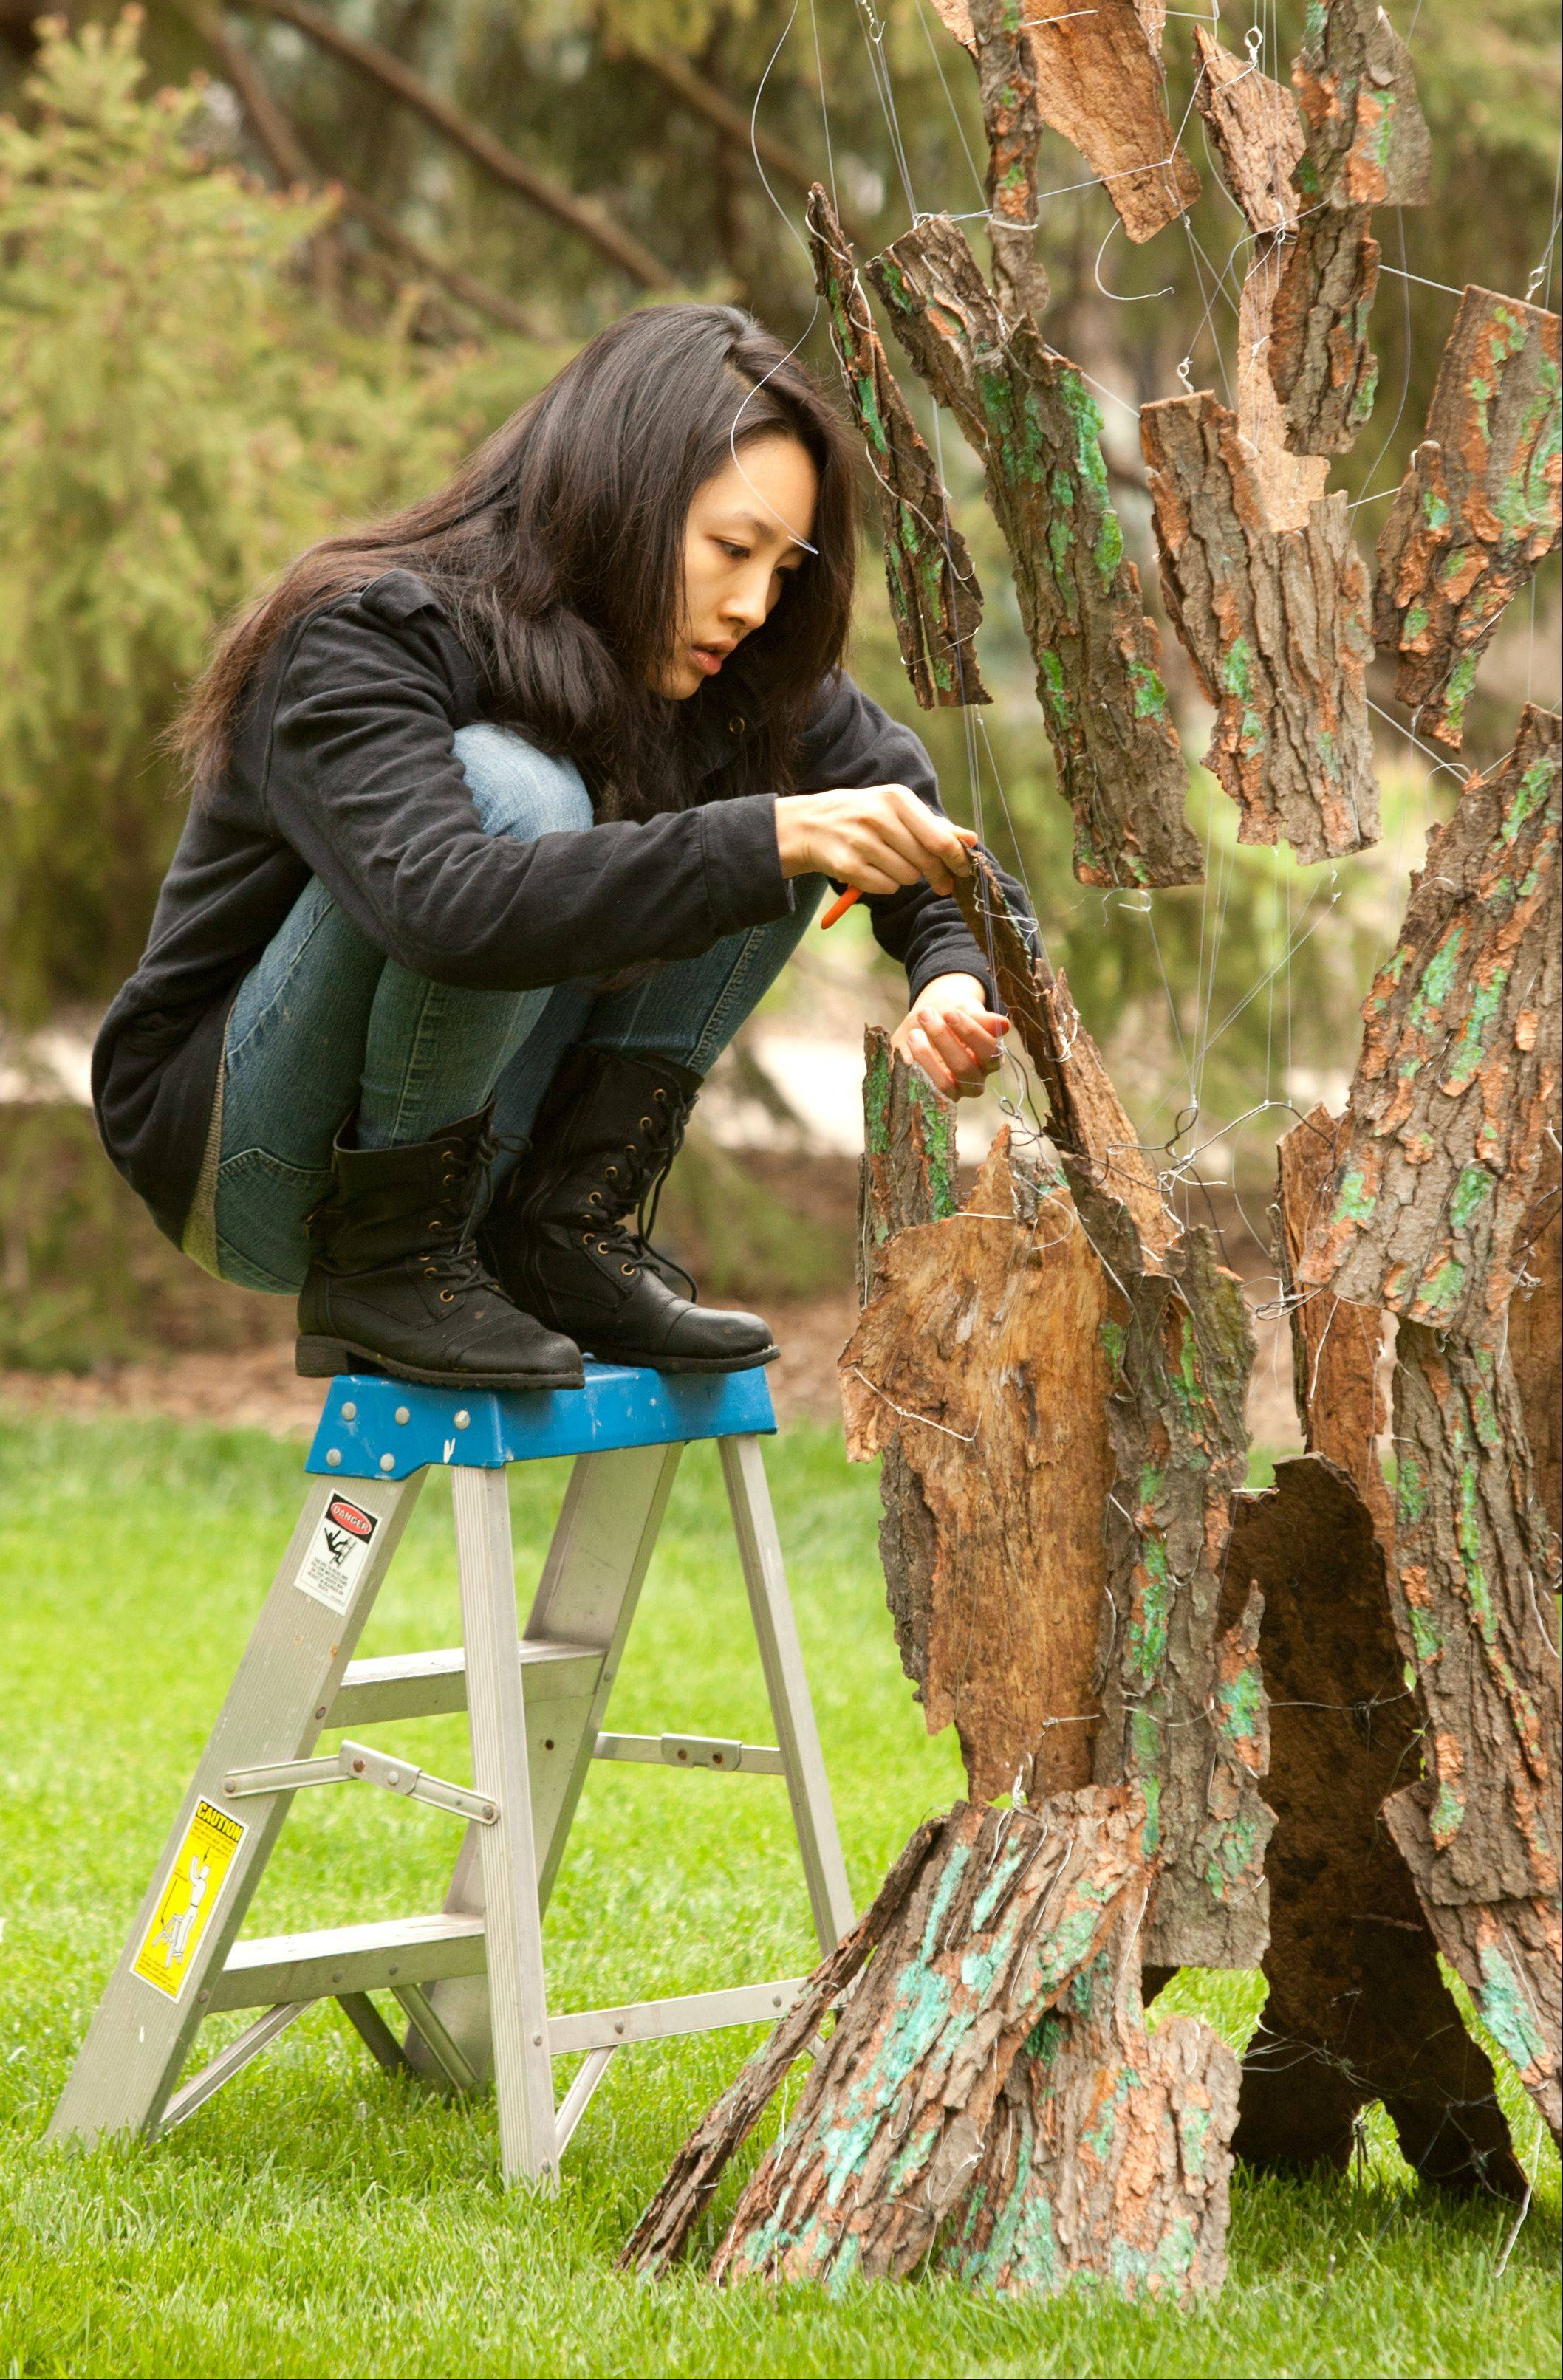 Neuqua Valley student Kathy Tae finishes display preparation for the Spring in Suspense project, at the fifth annual DuPage Invitational Sculpture Show at Lilacia Park in Lombard. Other students Halston Hazdra and Michael Wolowski worked on the project under the guidance of teachers Adam Johnson and Steve Jones.